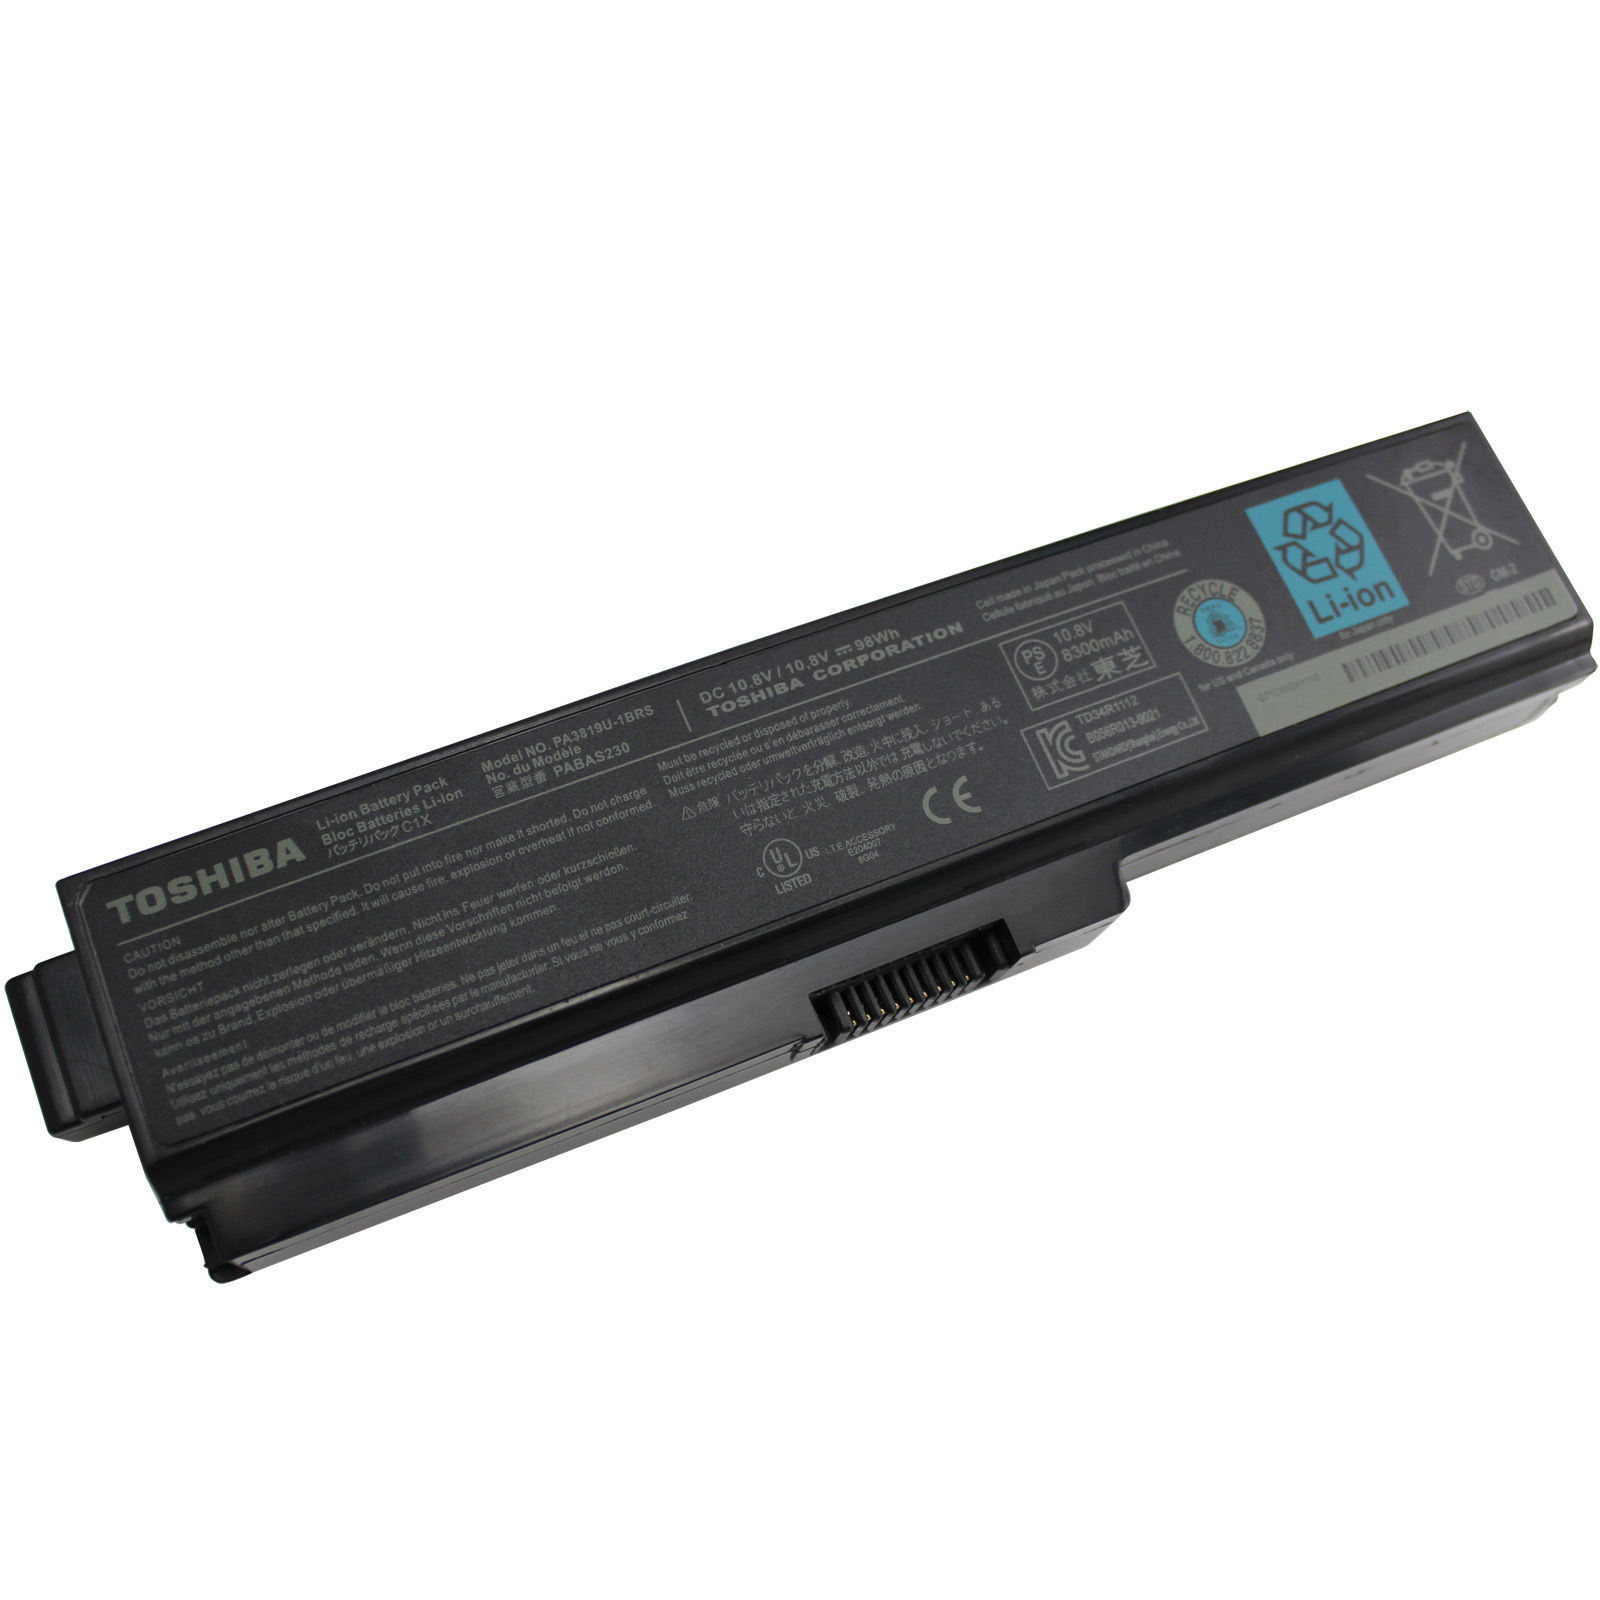 Hot- Sale Replacement Laptop Battery/Battery Charger/Li-ion Battery/Laptop Battery /Notebook Battery for Toshiba PA3817, PA3819, L600 L700 L630